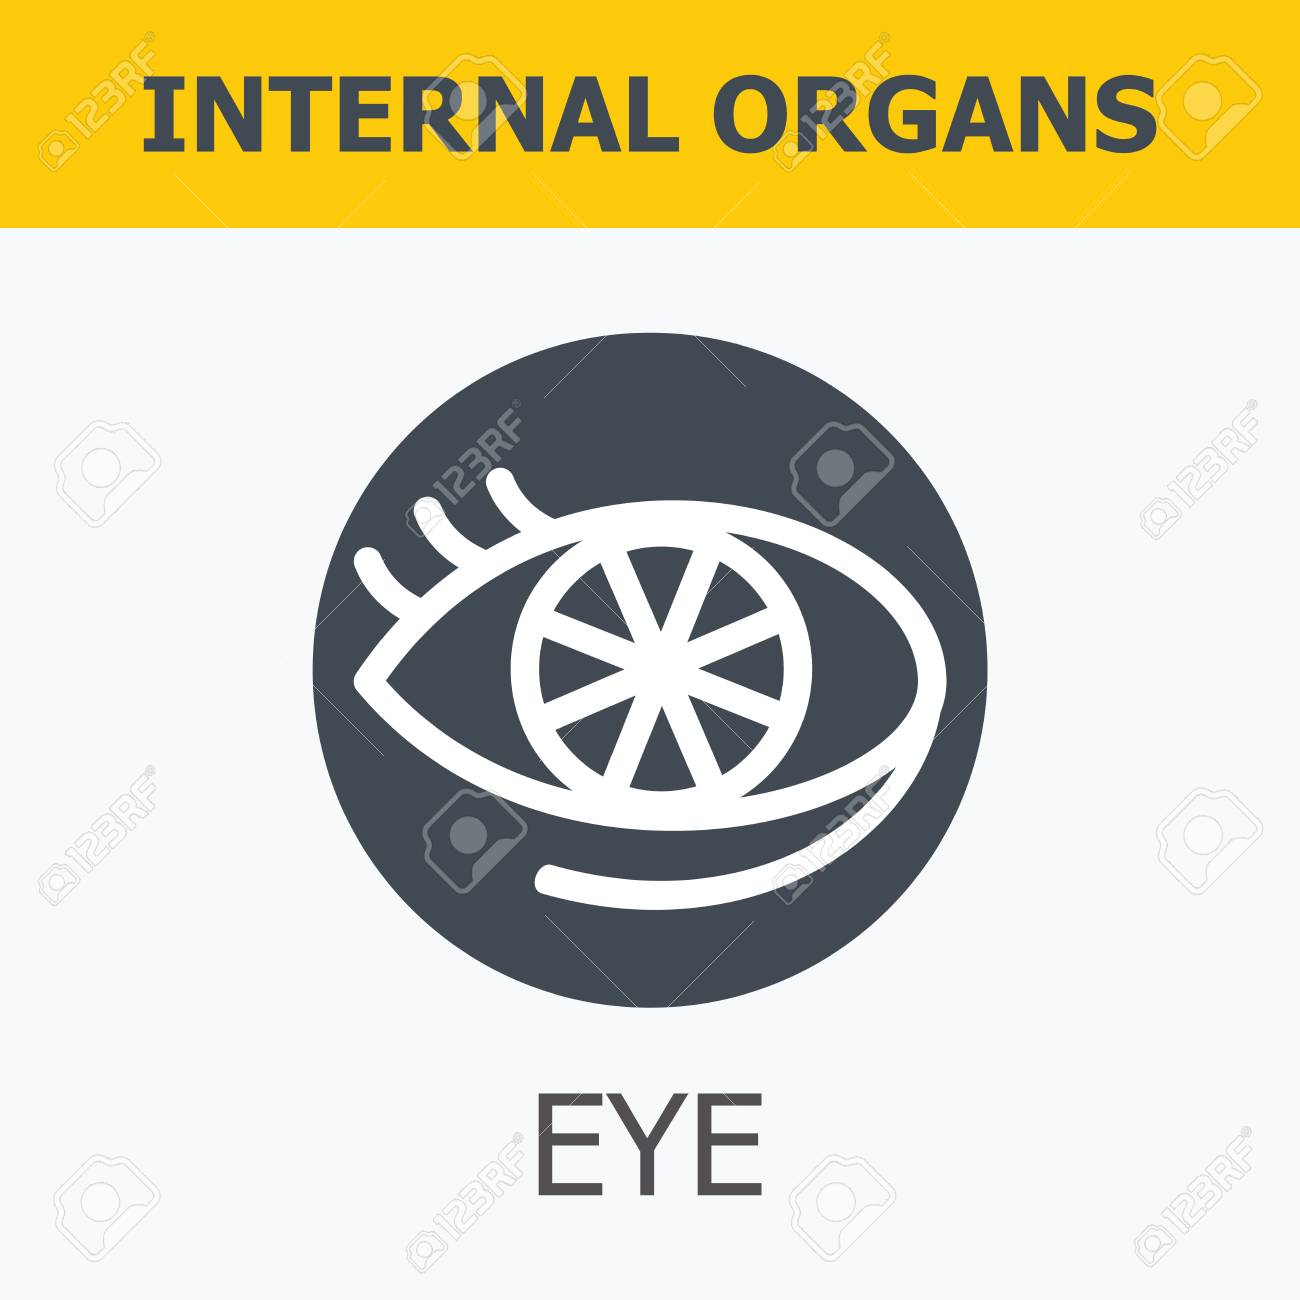 Internal organs eye family and a healthy lifestyle medical internal organs eye family and a healthy lifestyle medical infographic icons human ccuart Gallery